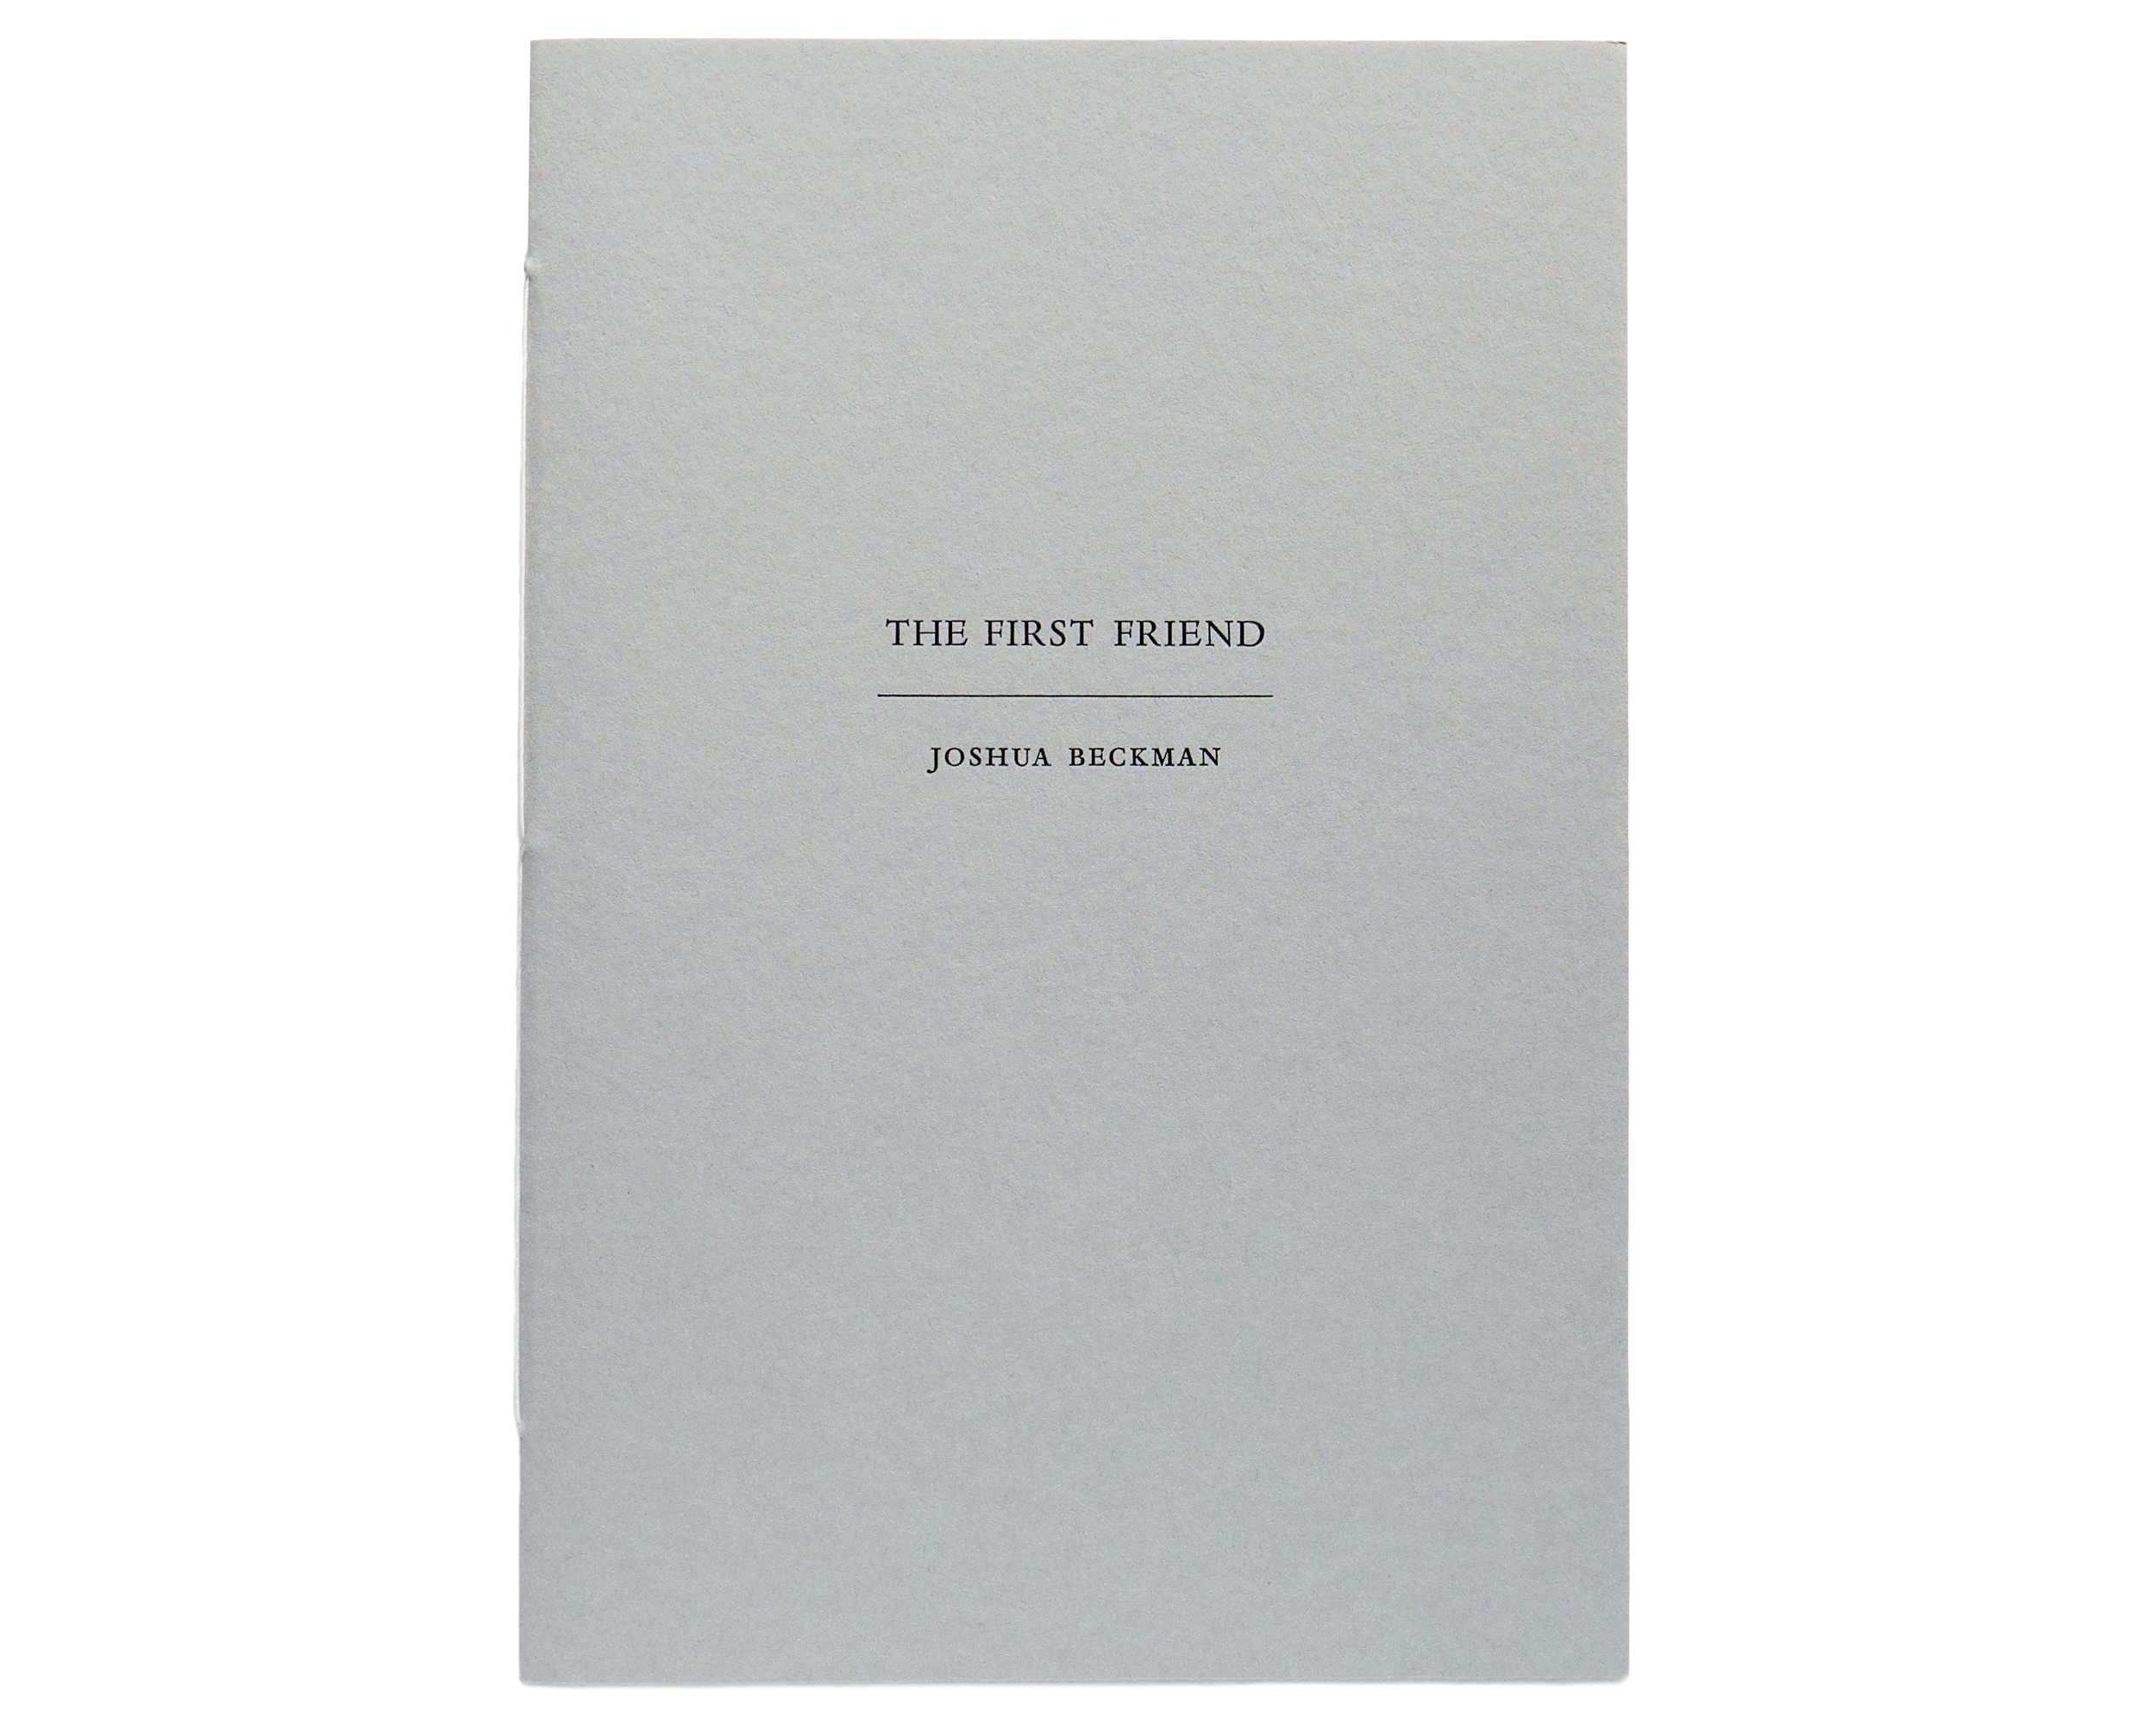 The-Brother-In-Elysium-Pamphlet-Series-no-3-Joshua-Beckman-Walt-Whitman-The-First-Friend.png